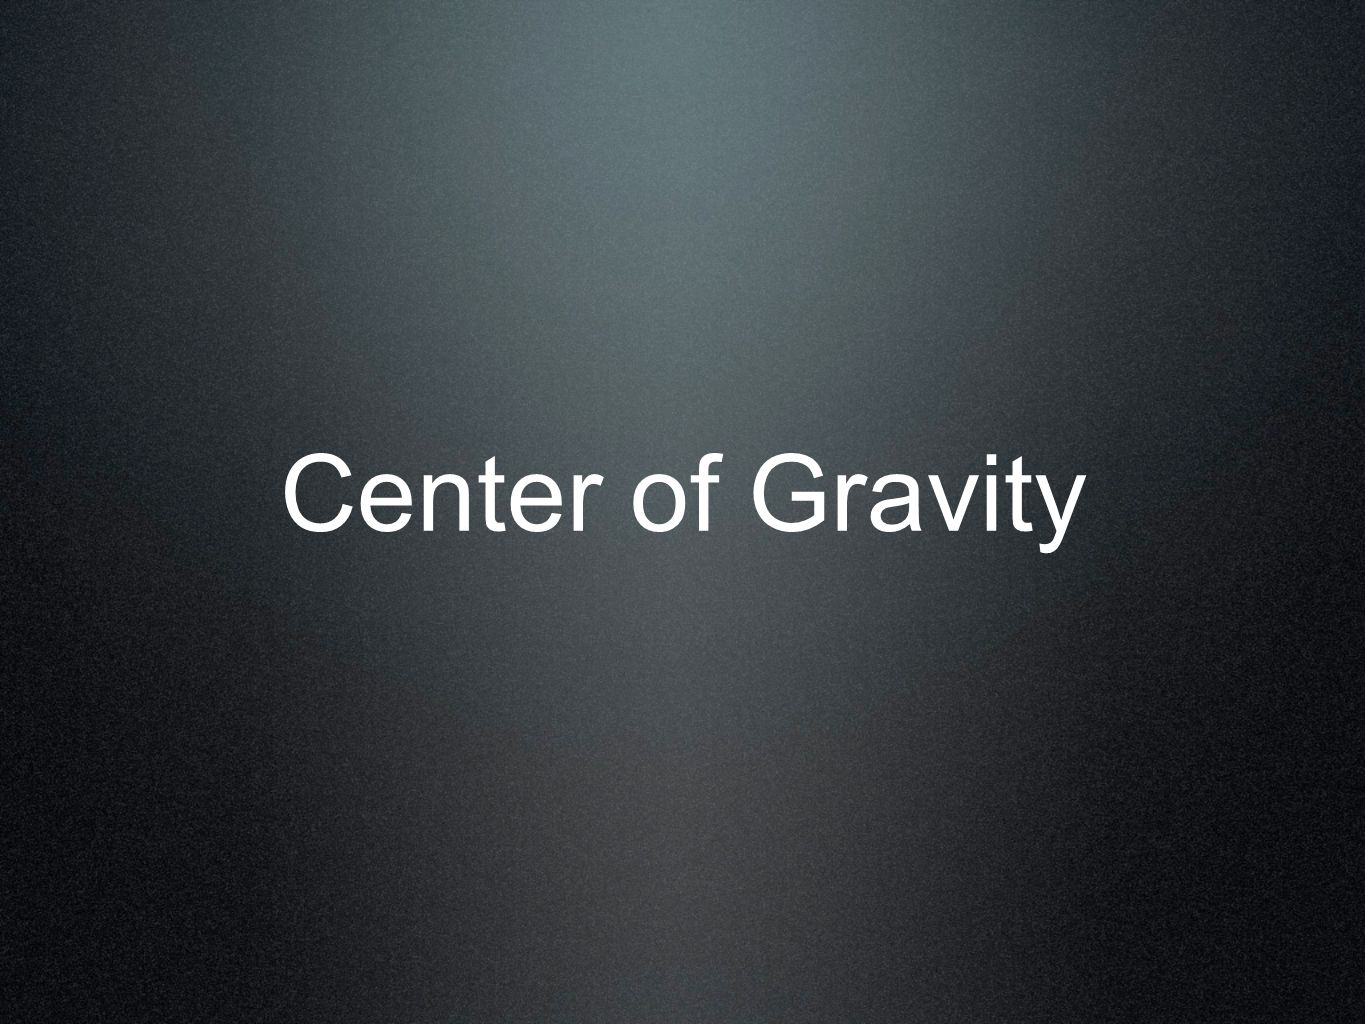 Center of Gravity